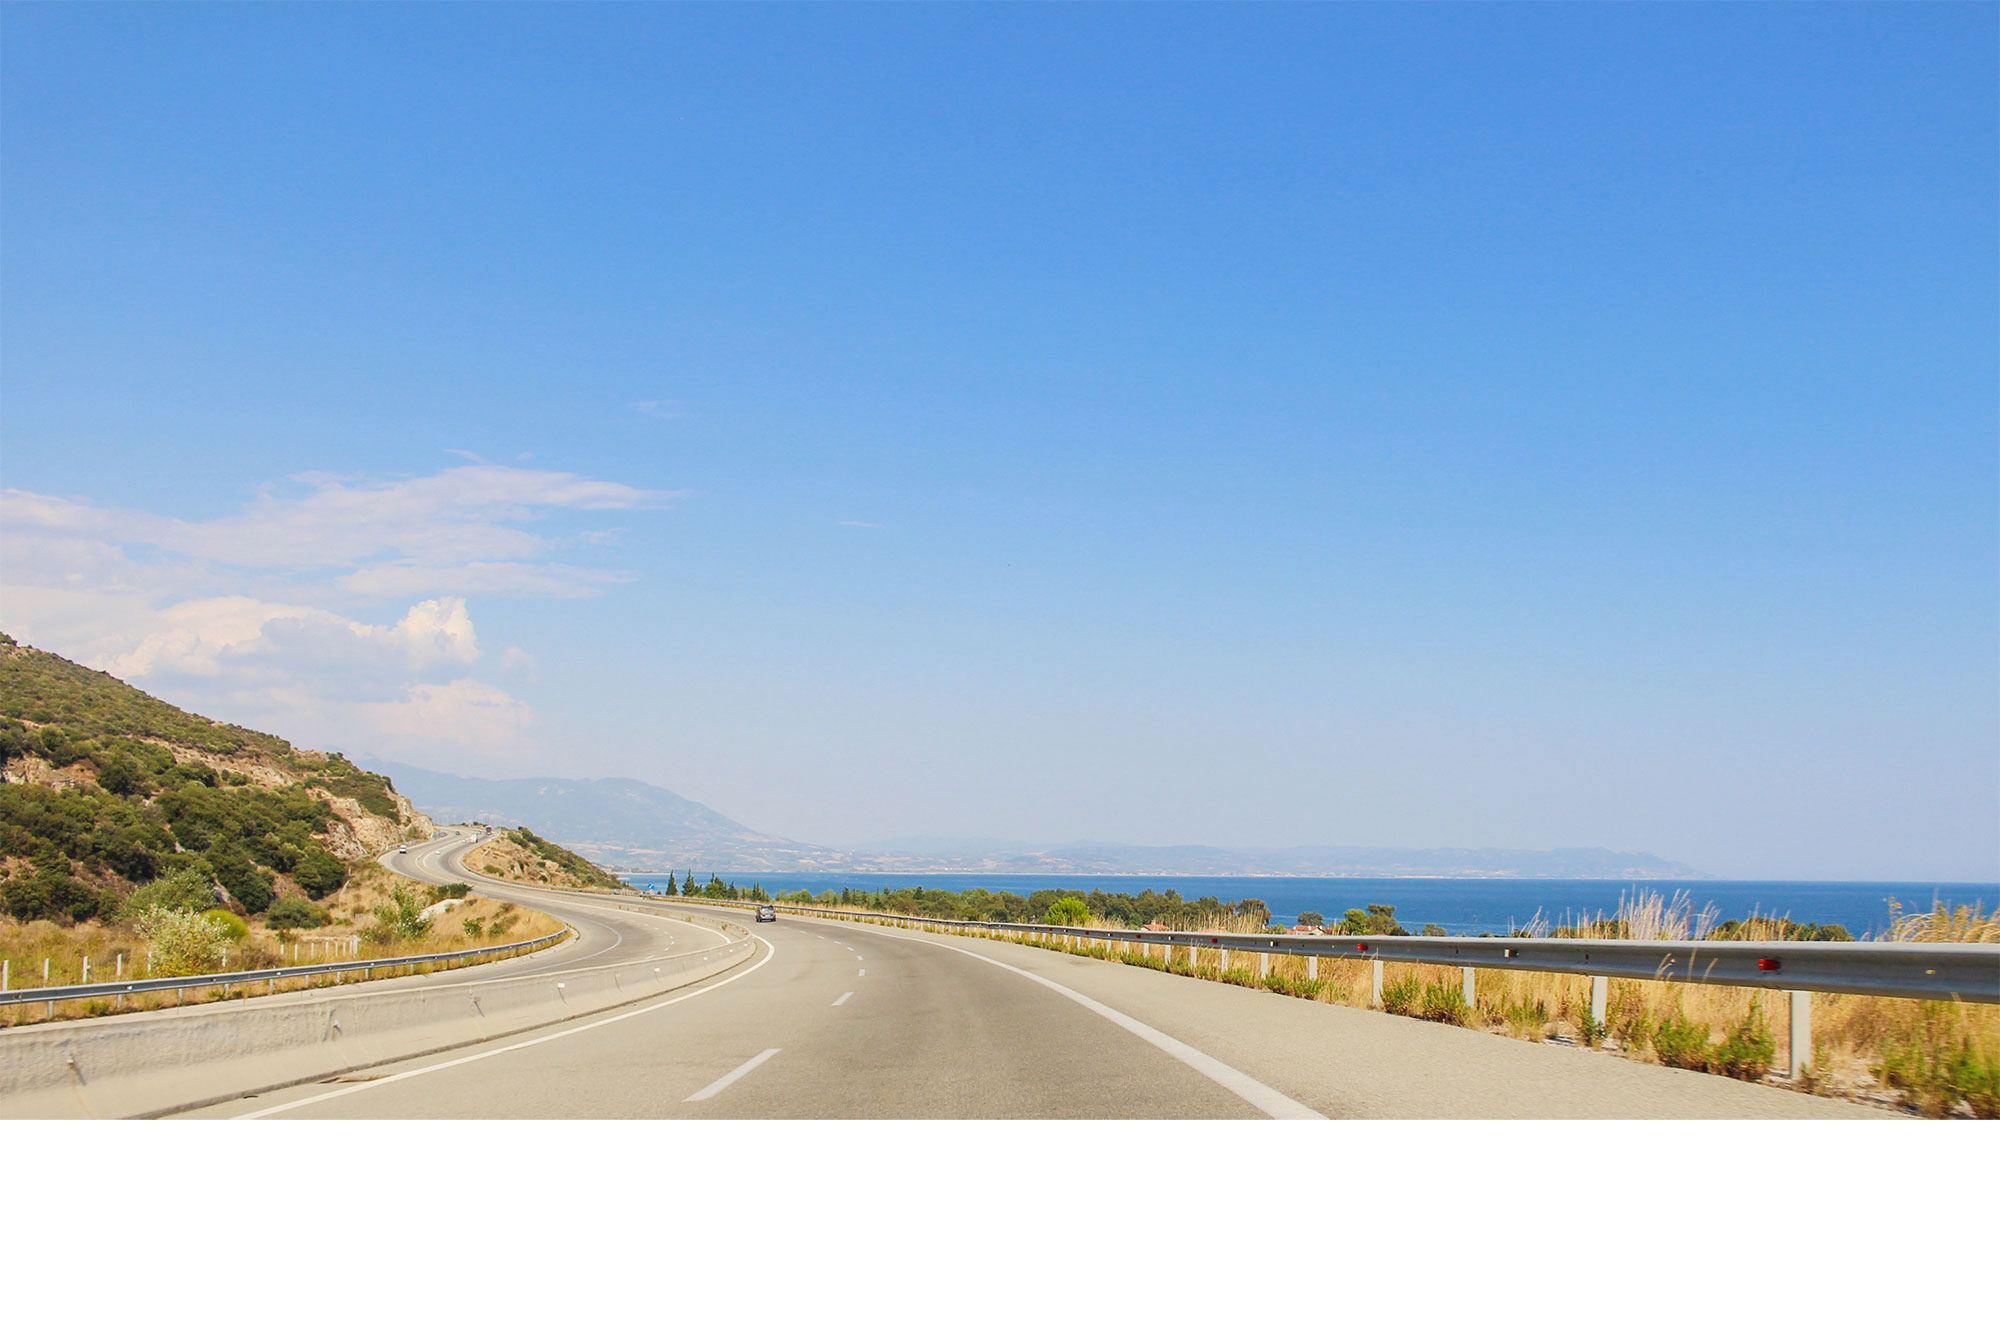 View of the Mediterranean Sea from the Road in Thessaloniki